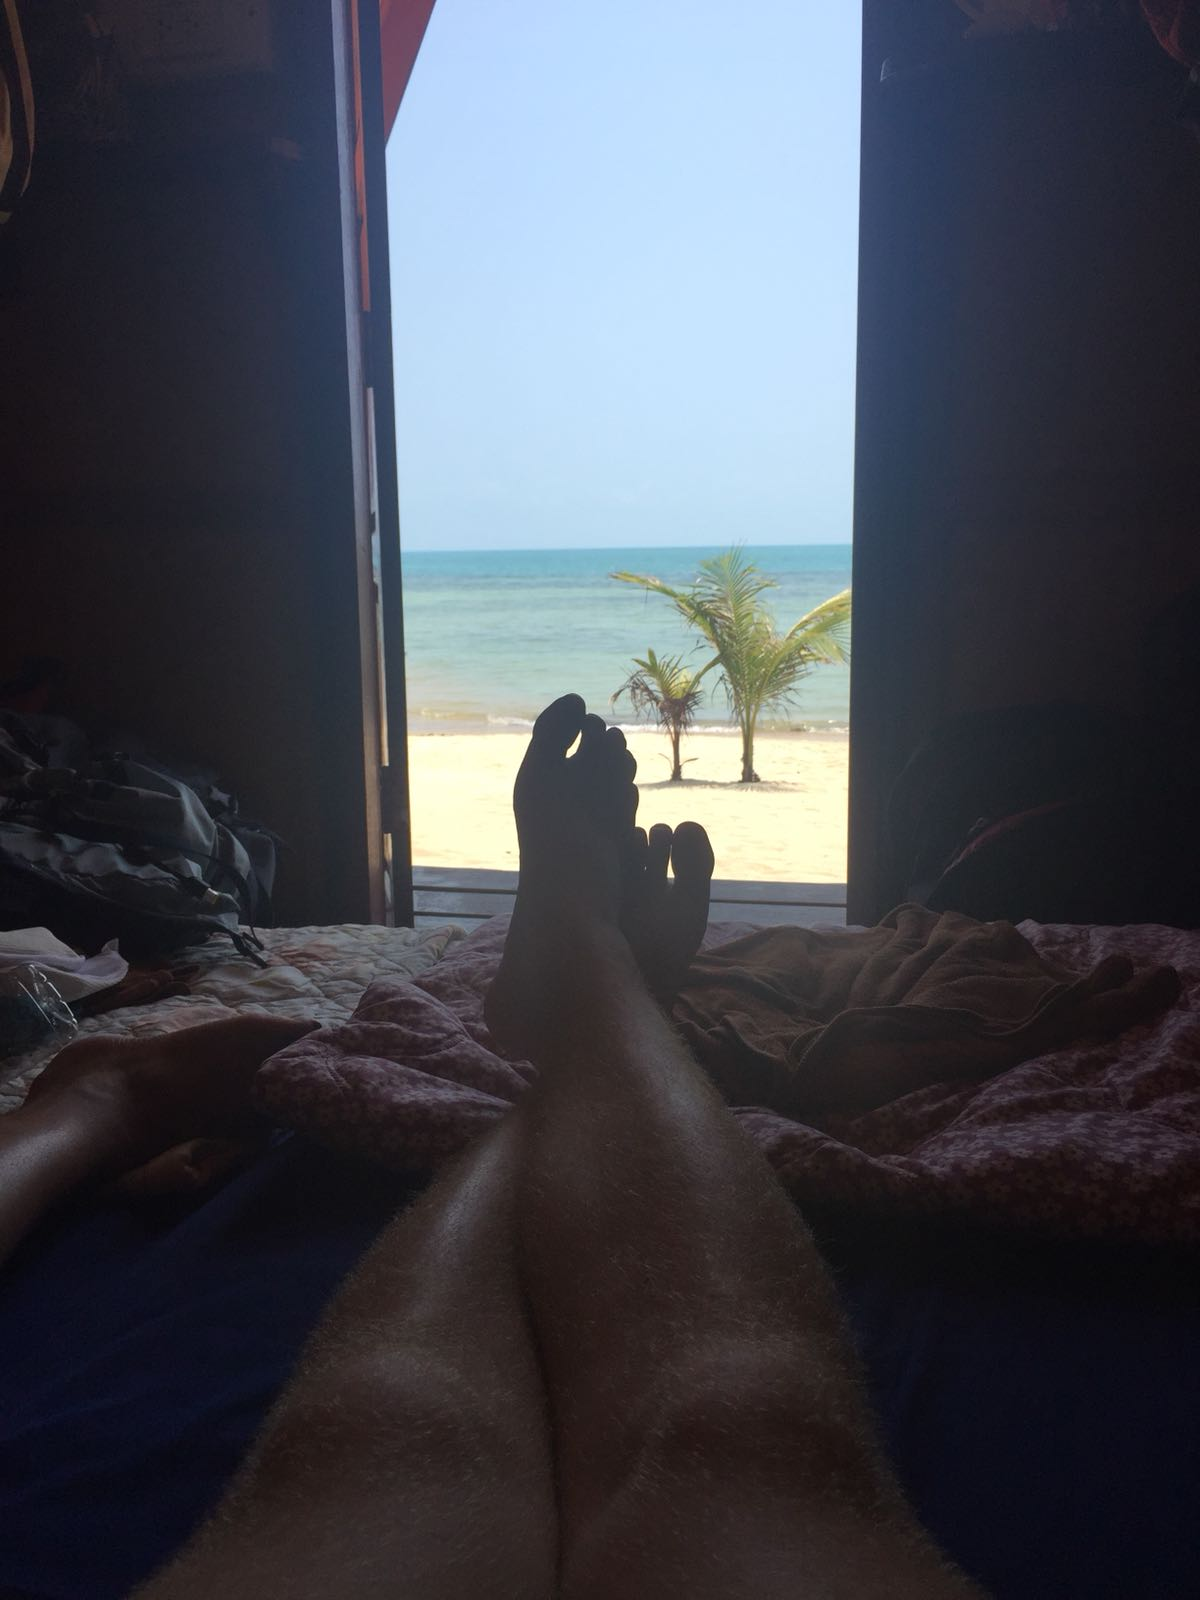 Gregs feet and the view from our beach bungalow